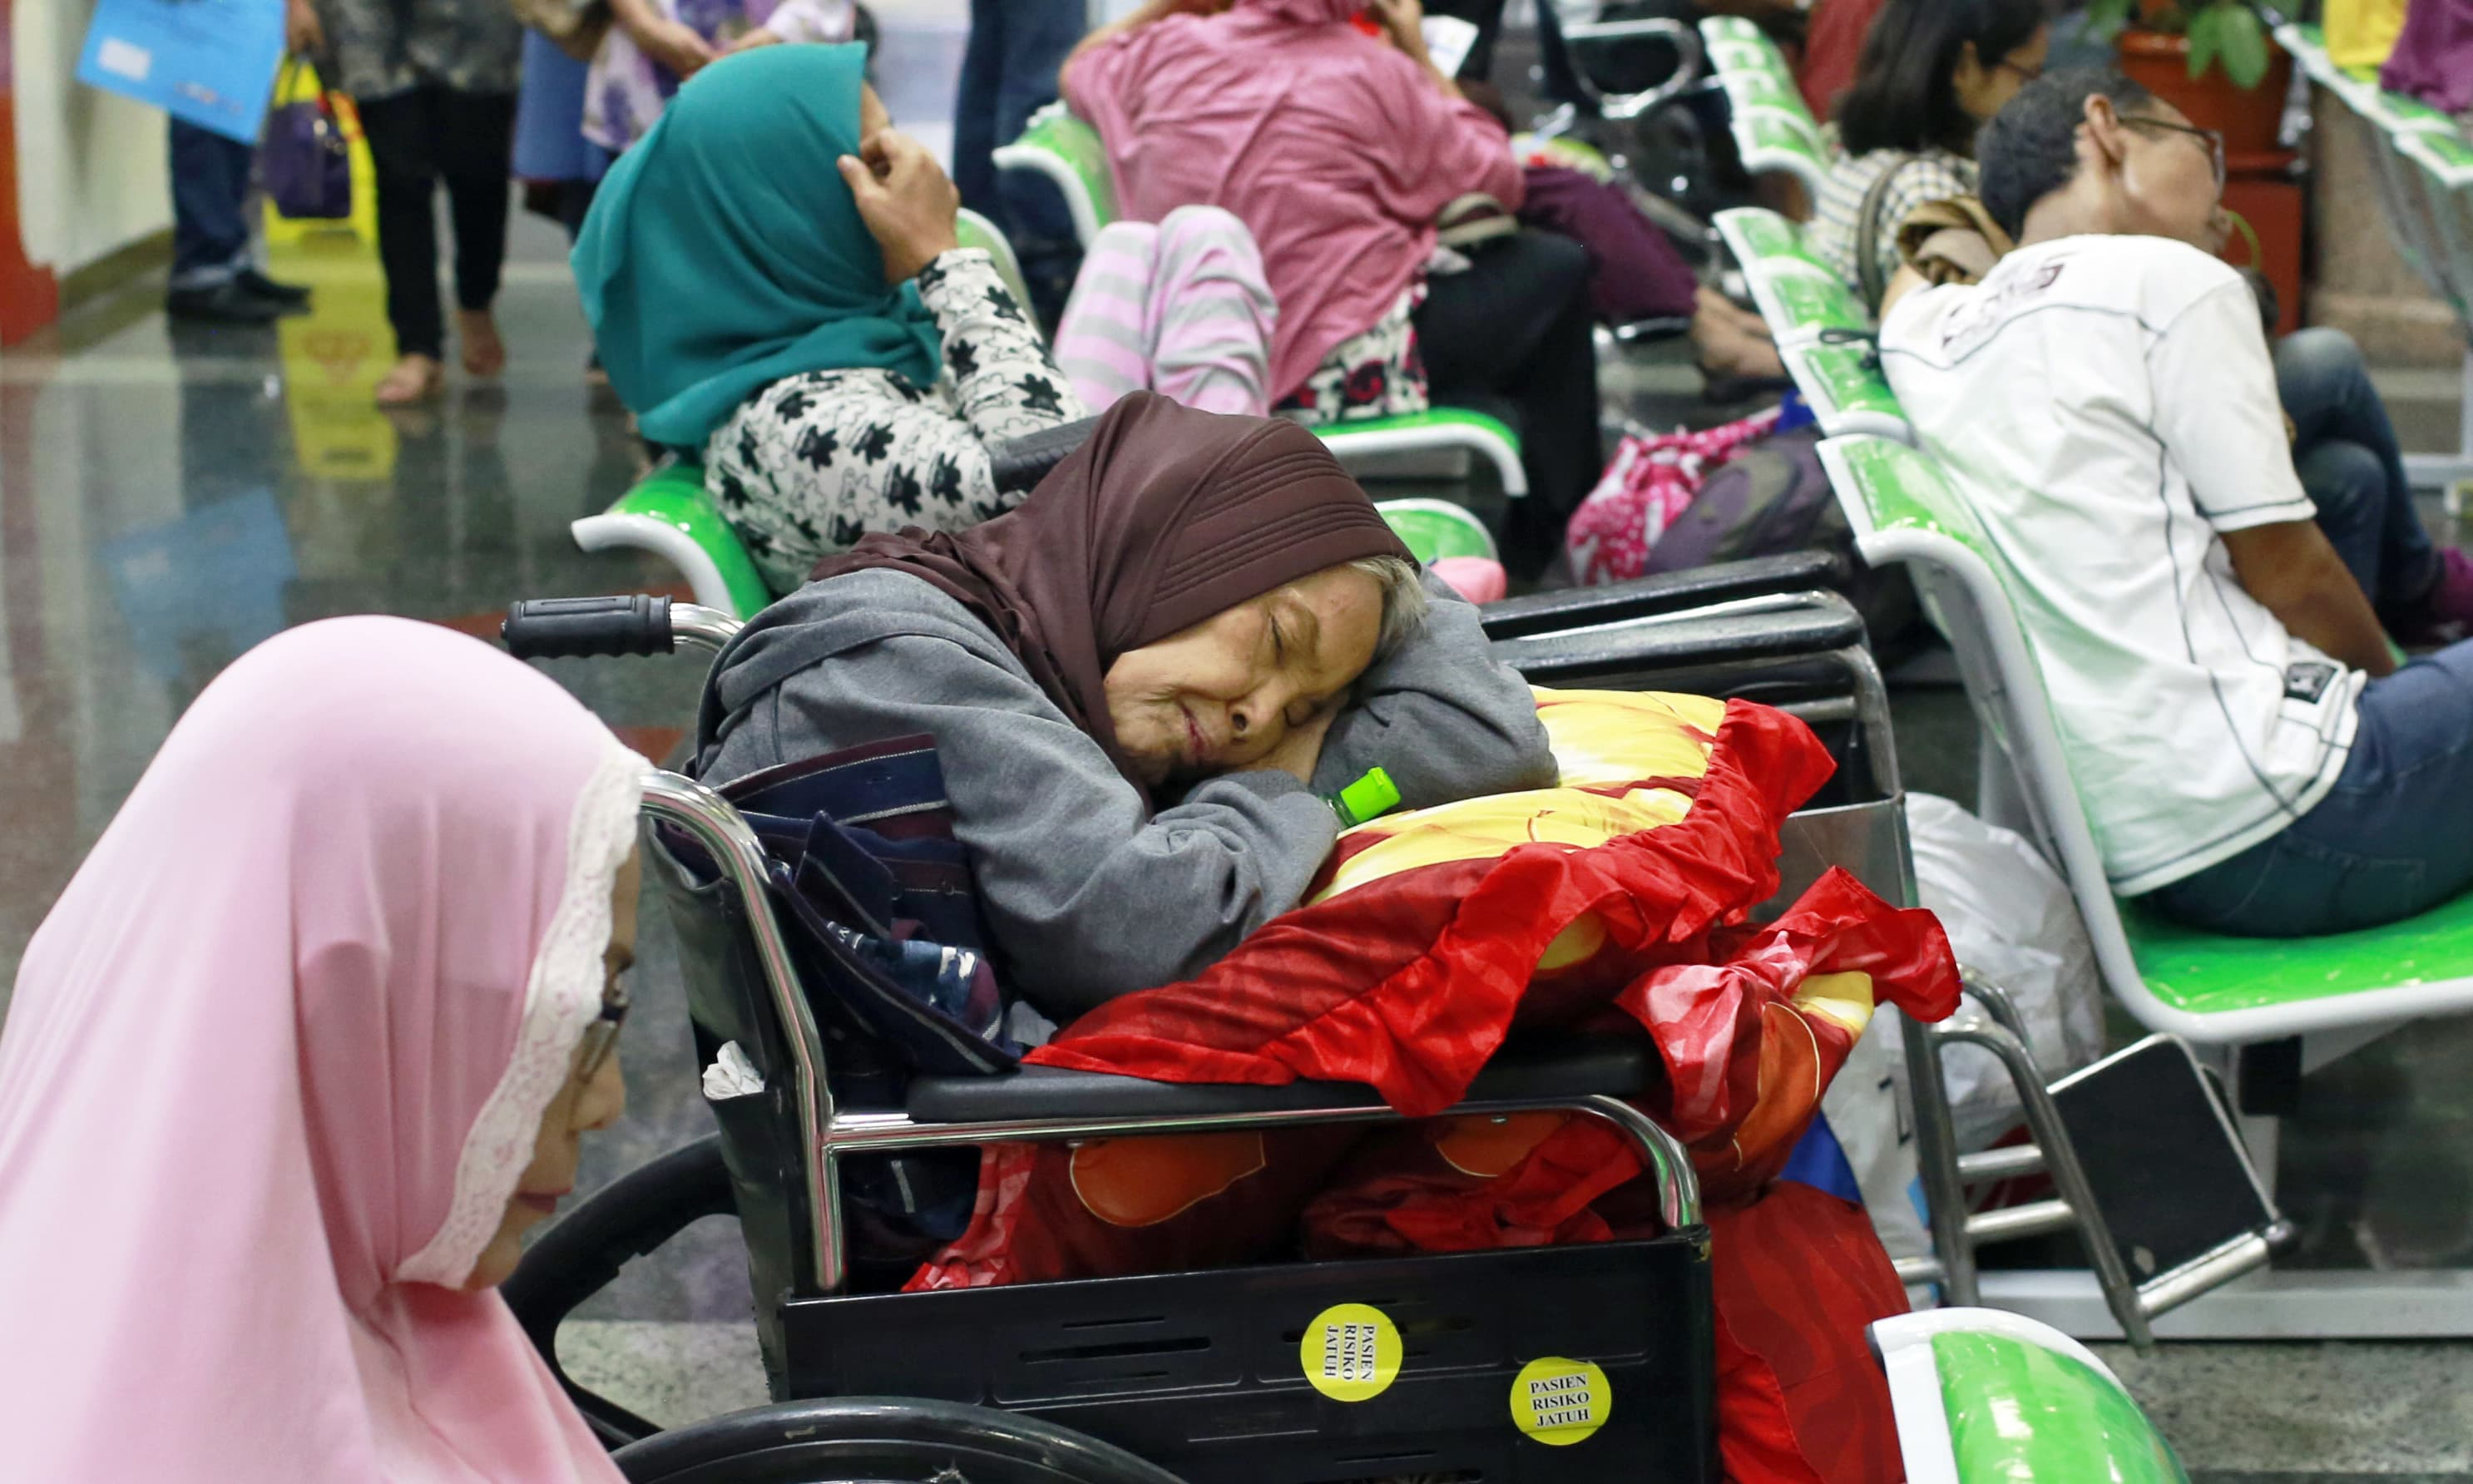 A patient takes a nap on her wheelchair as she waits with others at the registration desk at Dharmais Cancer Hospital in Jakarta. —AP